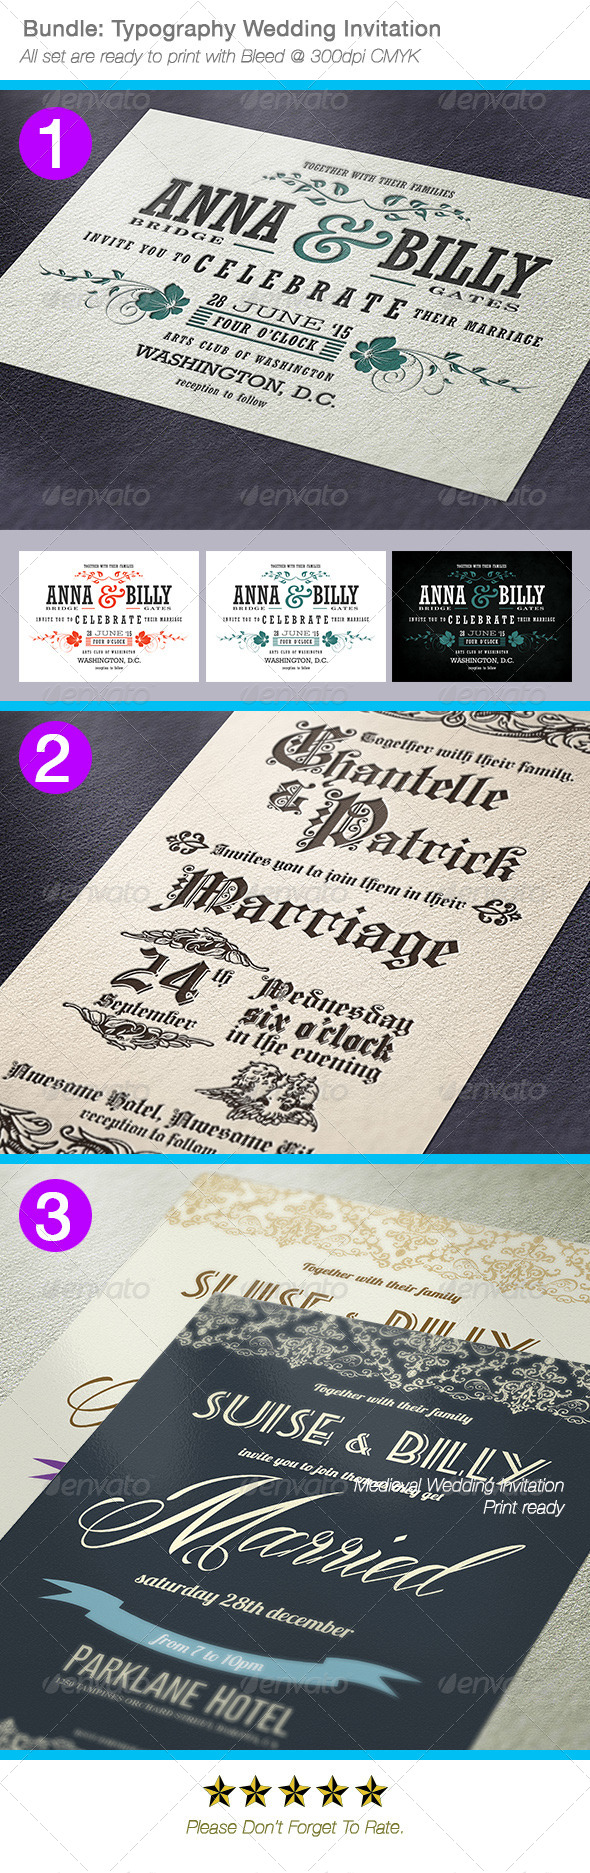 Bundle: Typography Wedding Invitations